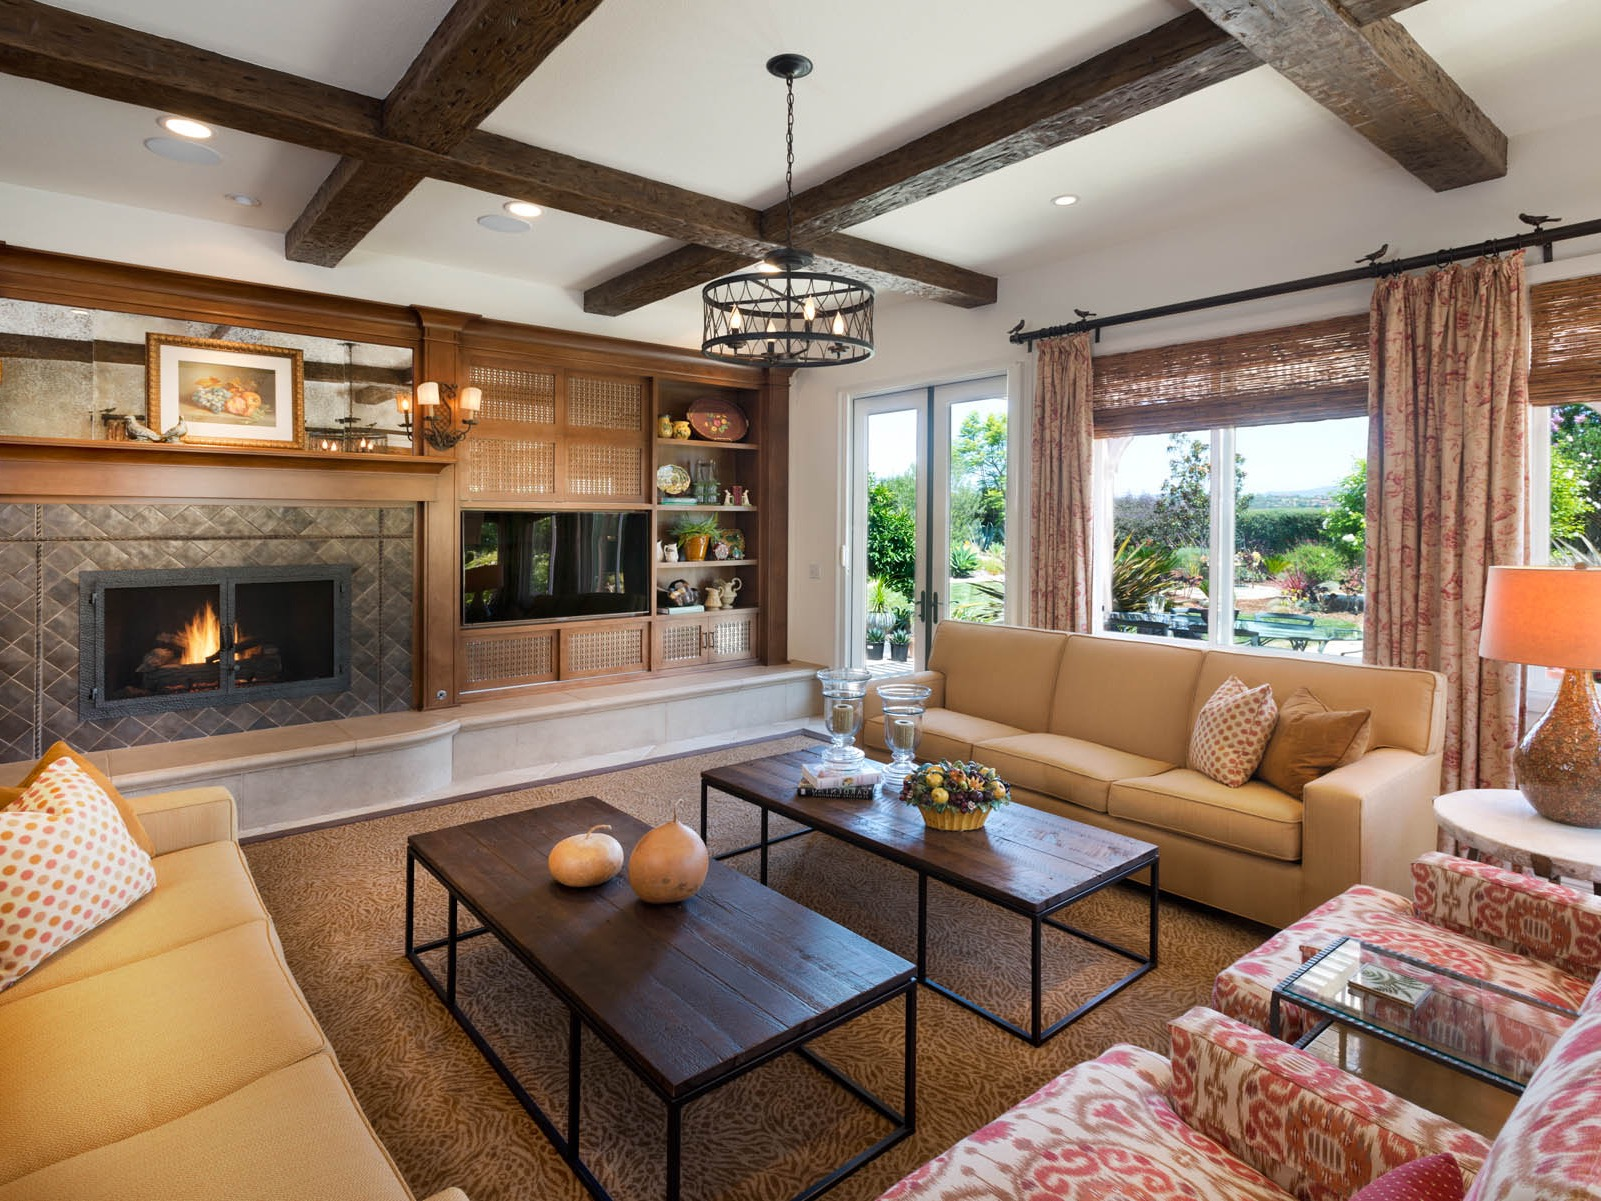 Modern Western Style Living Room With Classic Furniture (View 18 of 18)